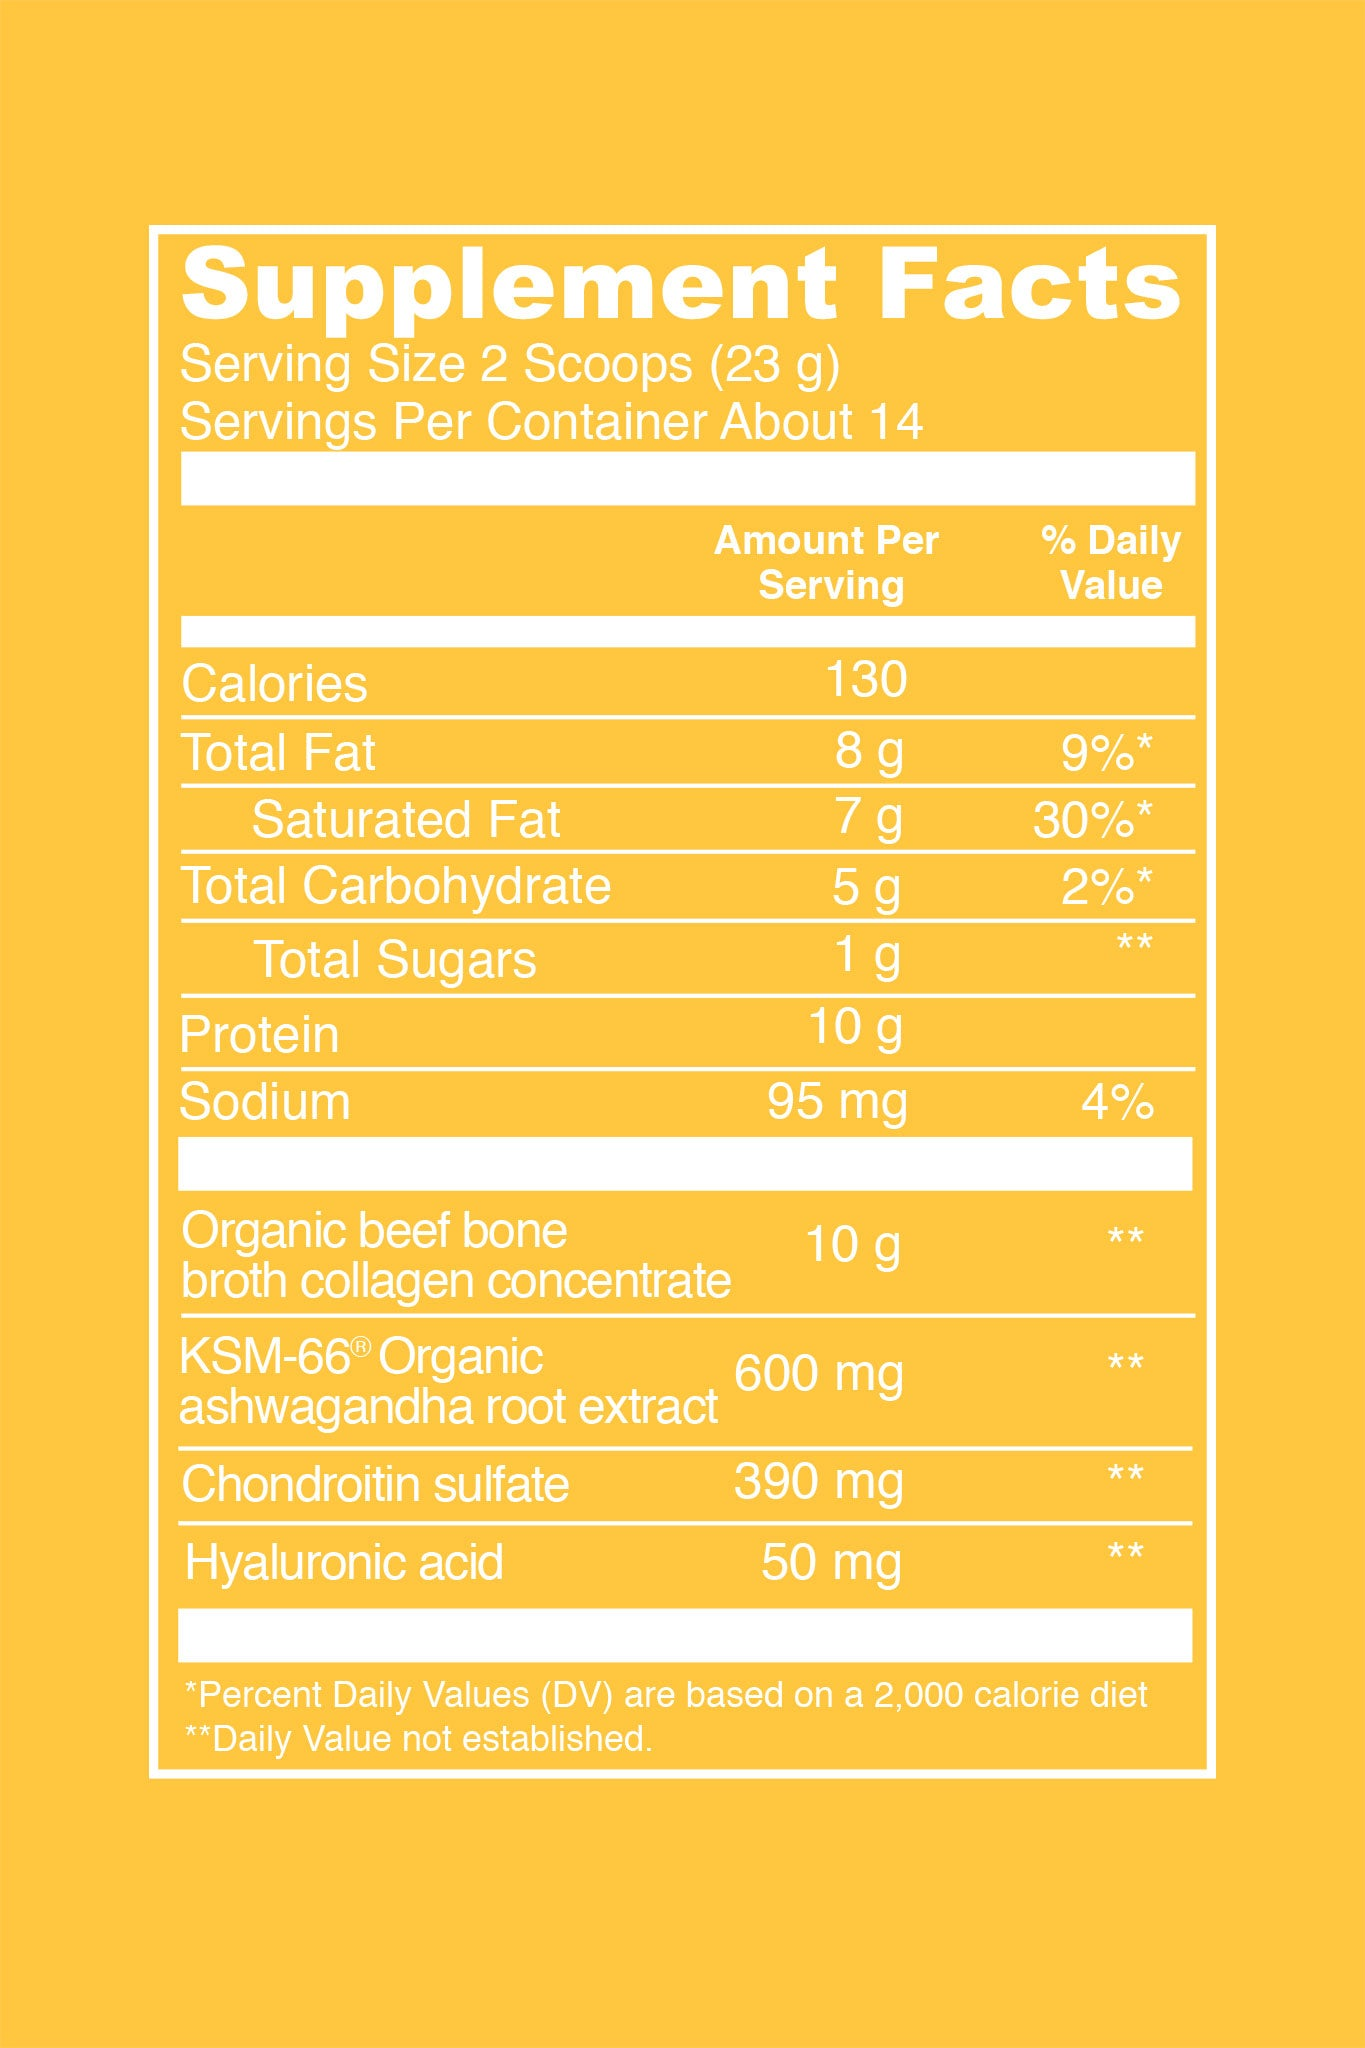 Madagascar Vanilla Collagen Latte (12.5 oz. Canister). Serving Size: 2 Scoops (23 g). Servings Per Container: About 14. Amount Per Serving: 130 calories - per serving. 8 g Total Fat (9% DV). 7 g Saturated Fat (30% DV). 5 g Total Carbohydrate (2% DV). 1 g Total Sugars. 10 g Protein. 95 mg Sodium (4% DV). 10 g organic beef bone broth collagen concentrate. 600 mg KSM-66 Organic ashwagandha root extract. 390 mg Chondroitin sulfate. 50 mg Hyaluronic acid.